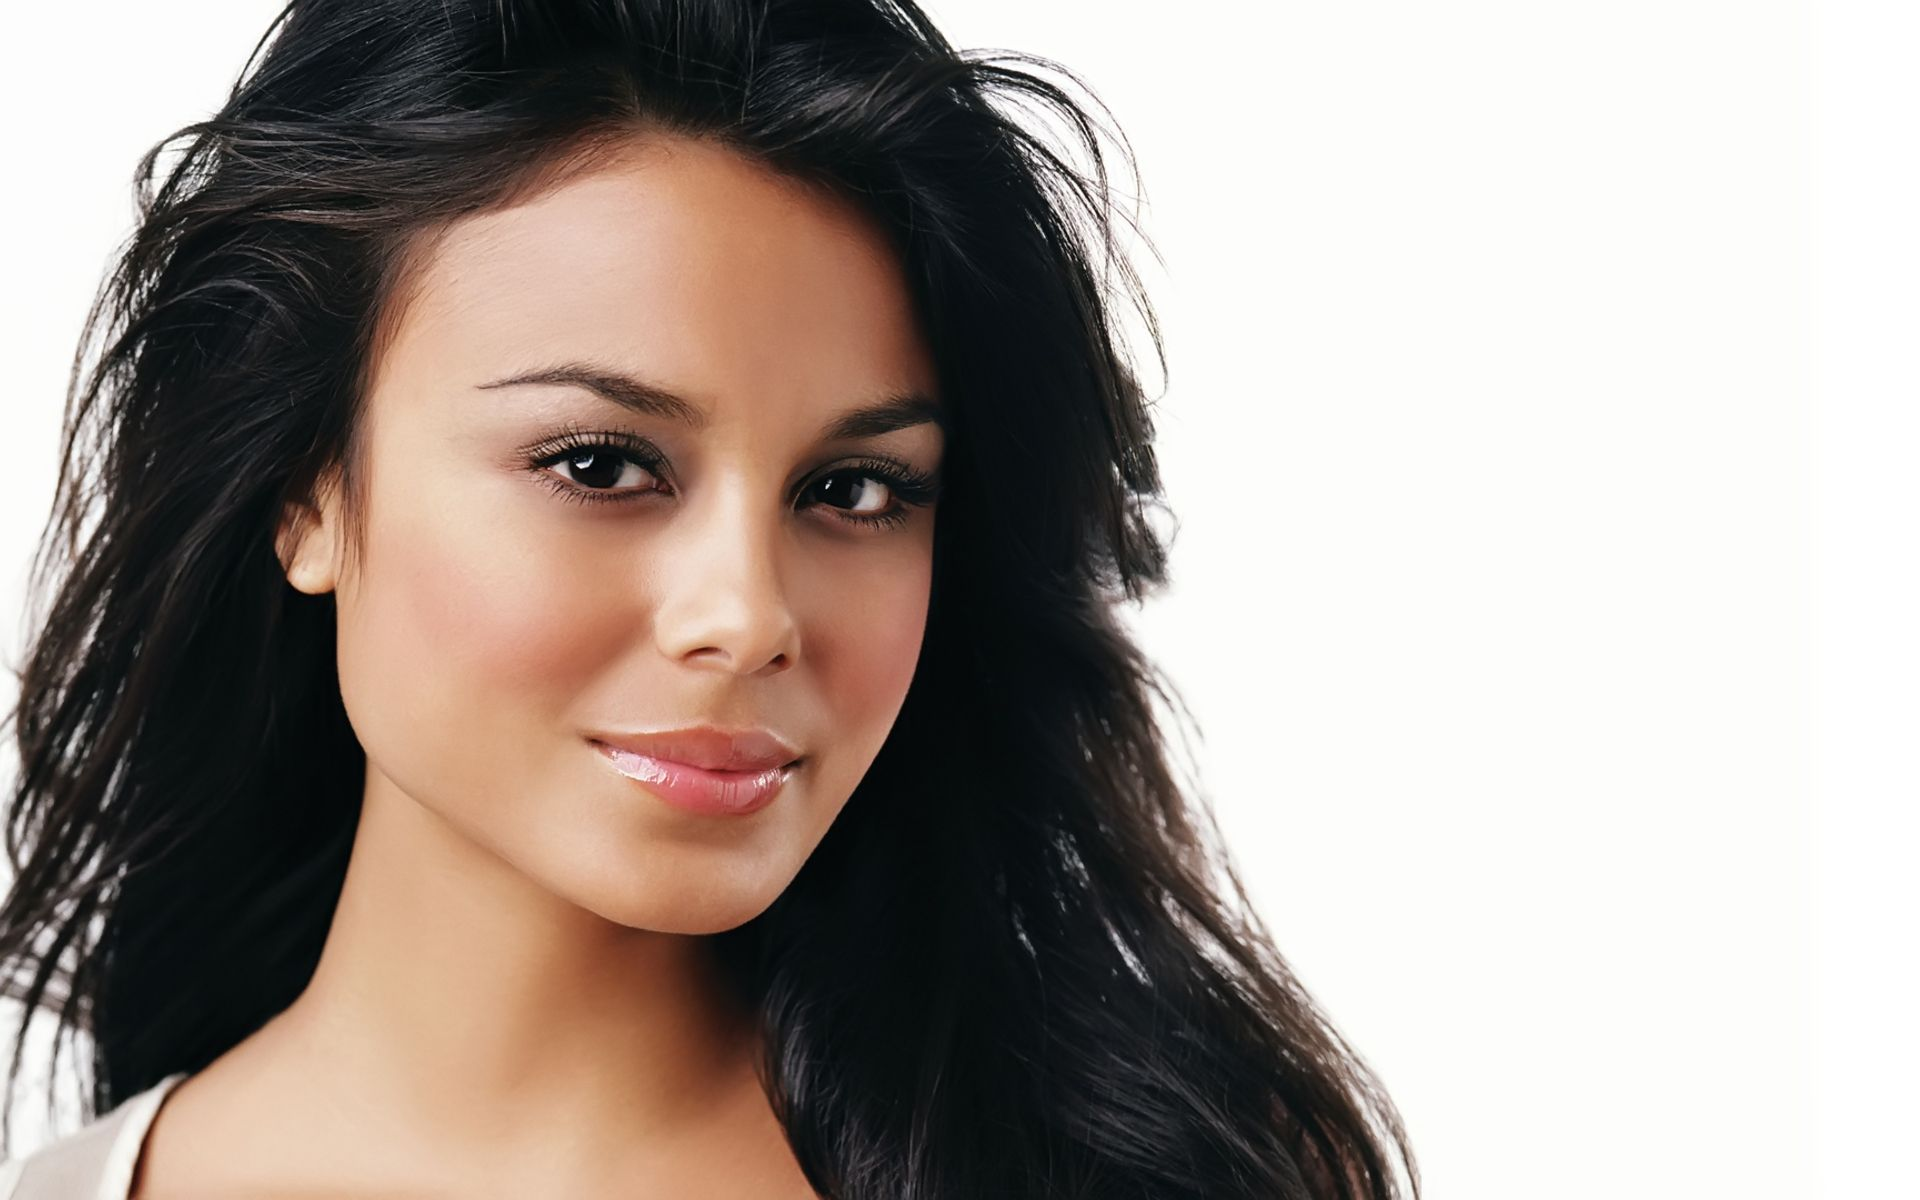 High quality 1920x1200 nathalie kelley portrait girl girls - High resolution wallpaper celebrity ...